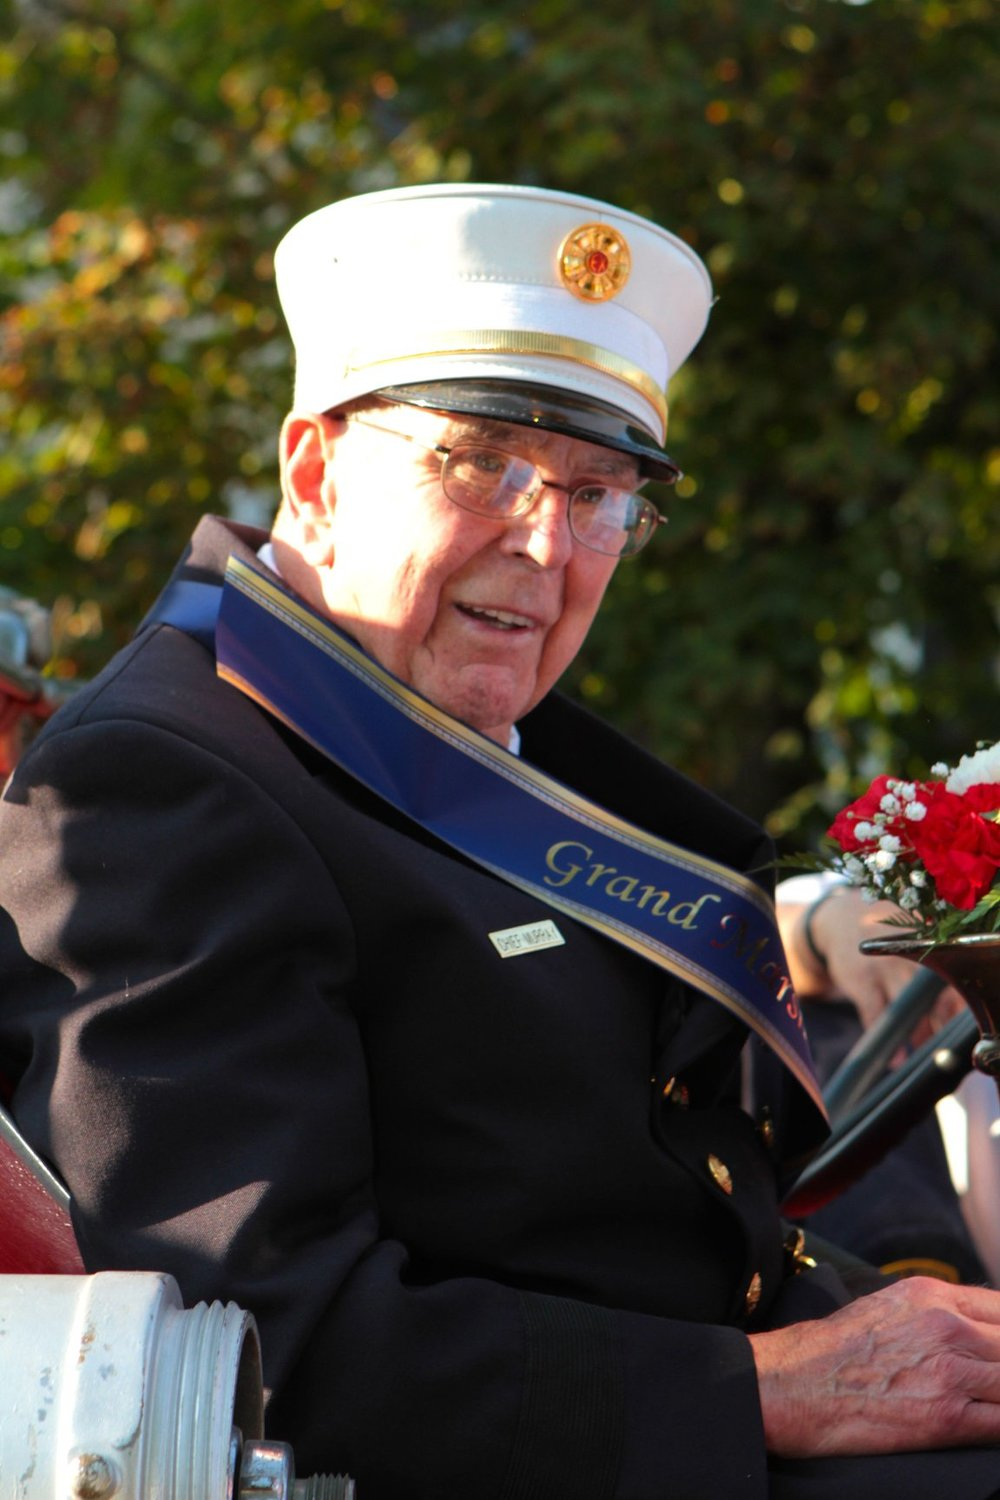 Eugene J. Murray was the grand marshal of the Nassau County Firemen's Association Parade in 2015.